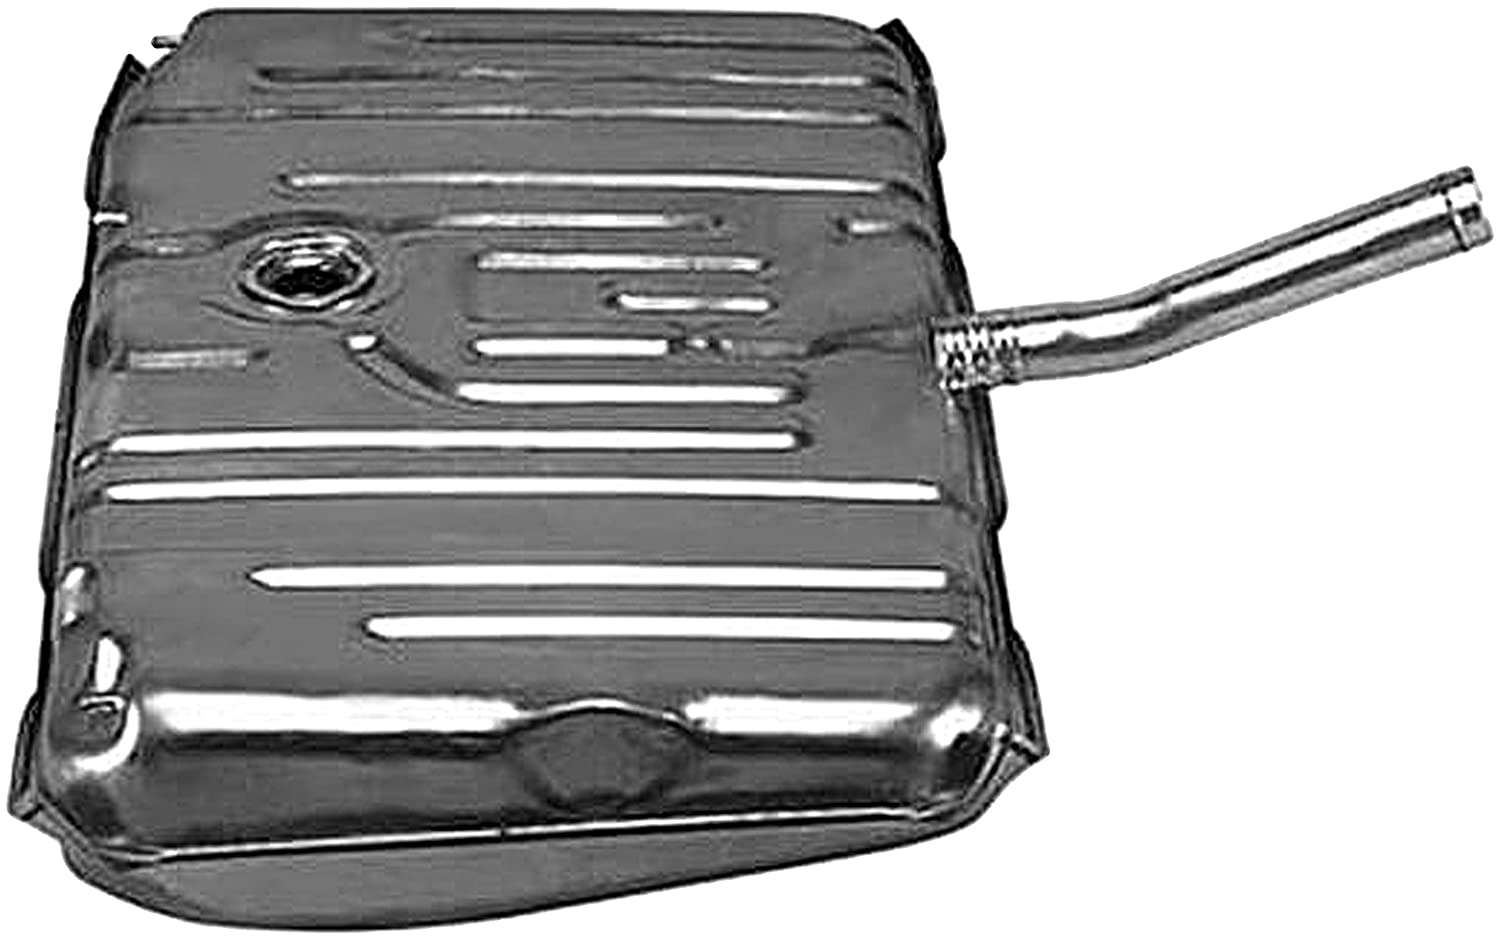 Dorman 576-217 Fuel Tank with Lock Ring and Seal